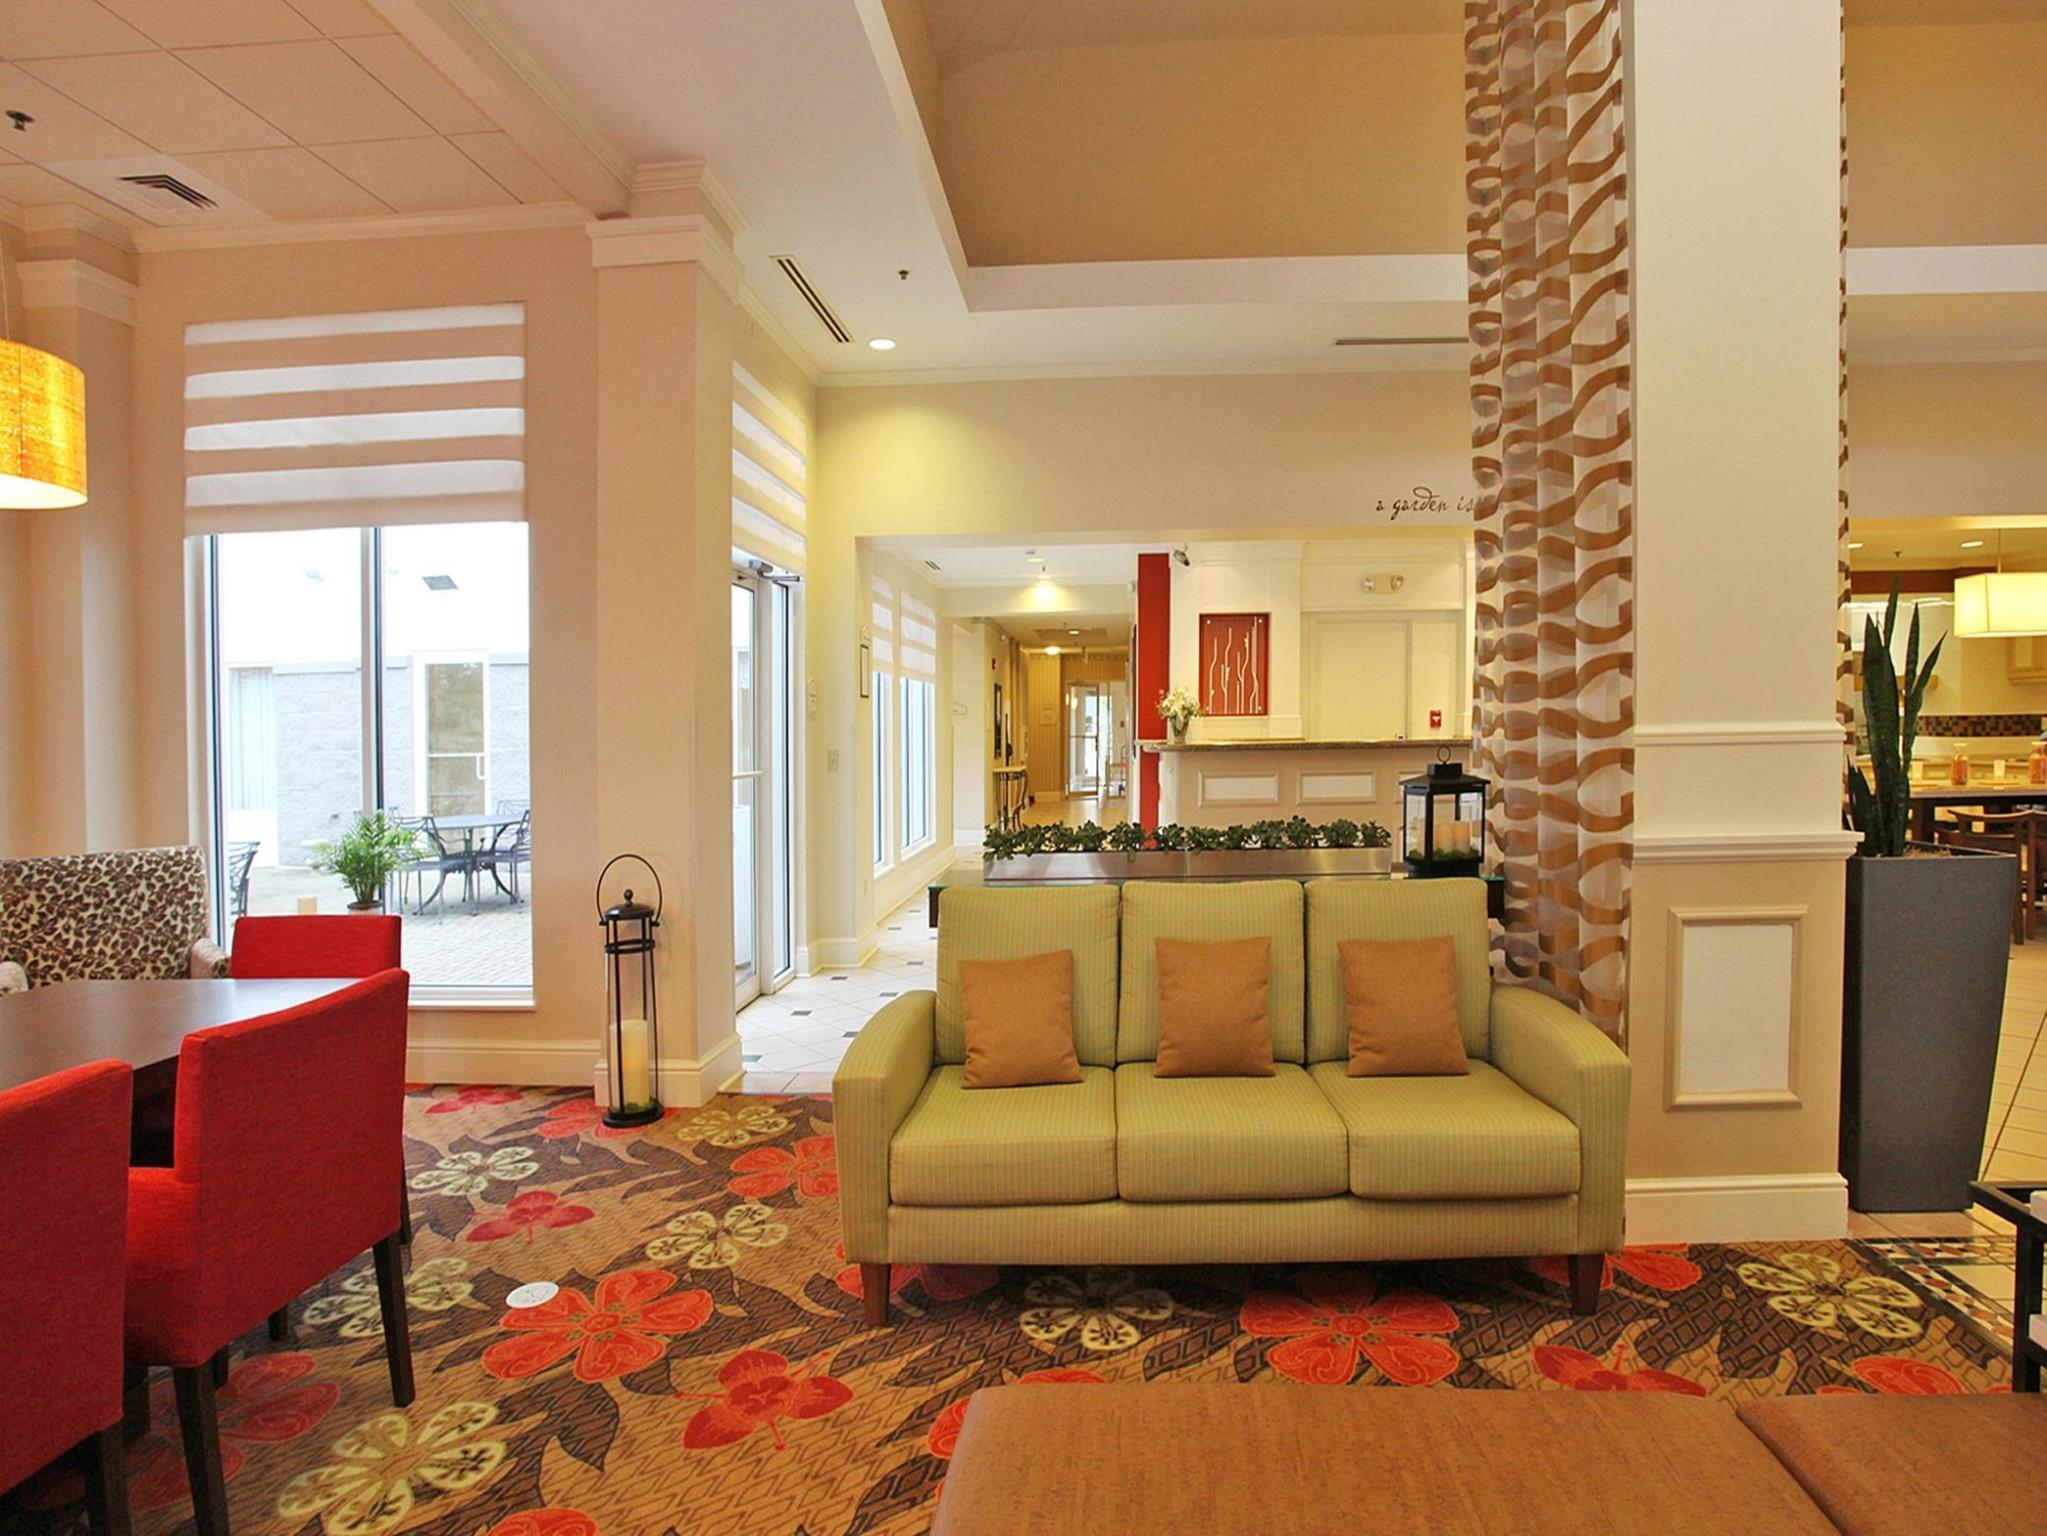 Charming More About Hilton Garden Inn Chesterton